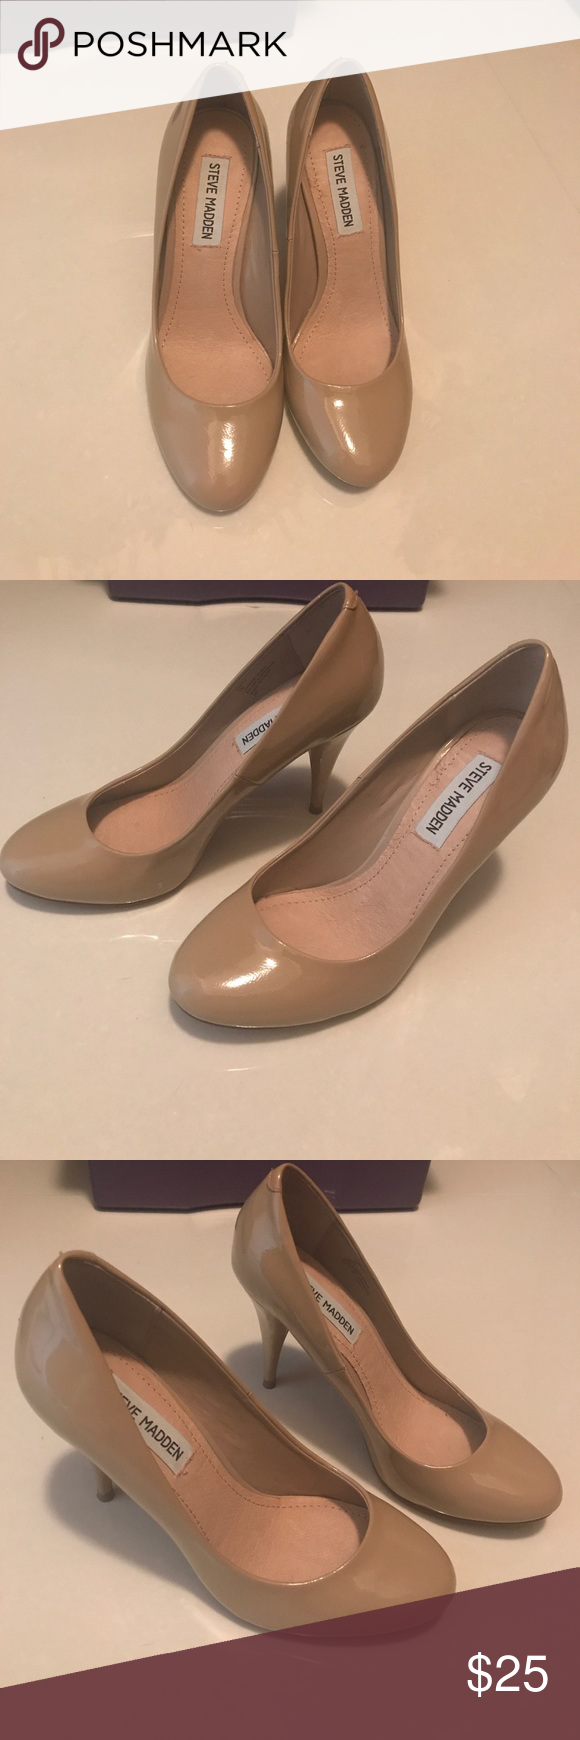 Nude Steve Madden Pumps Cream Steve Madden pumps in great condition. Heels are 3 3/4 inches high. Steve Madden Shoes Heels